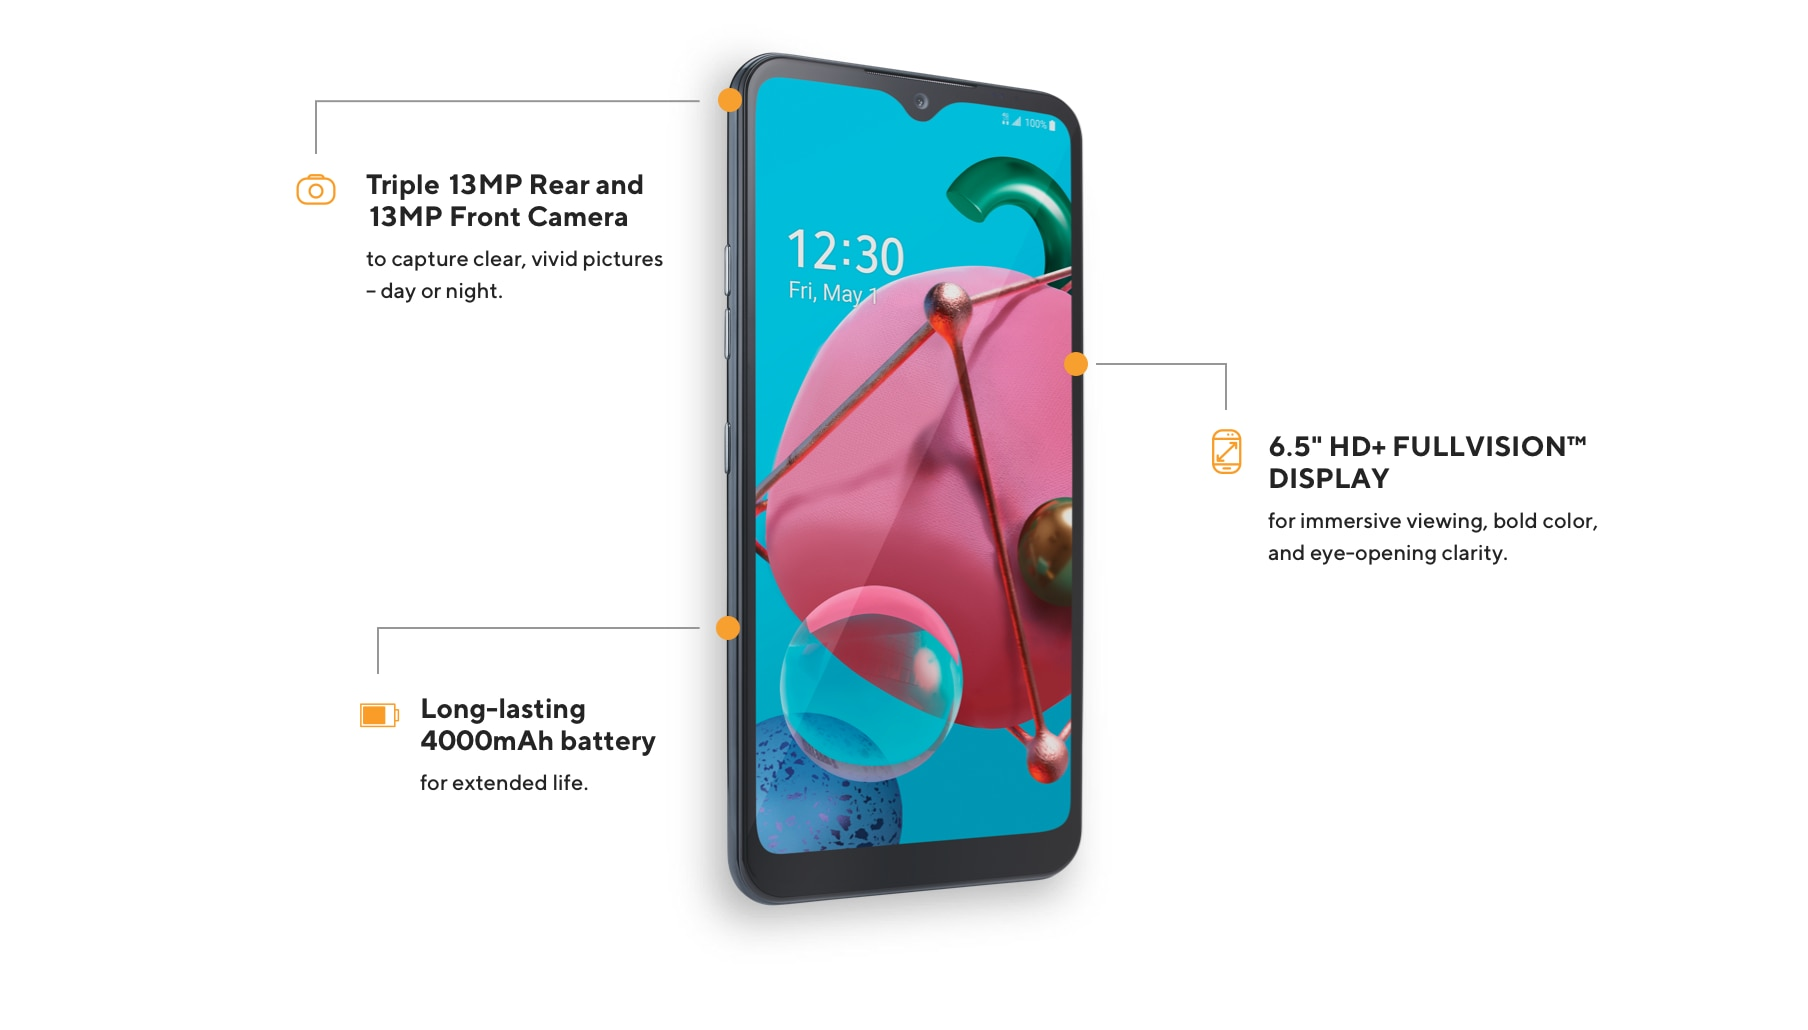 The LG K51 offers a 13MP camera, 6.5-inch HD plus Full-Vision display, and a long lasting 4000mAh battery.